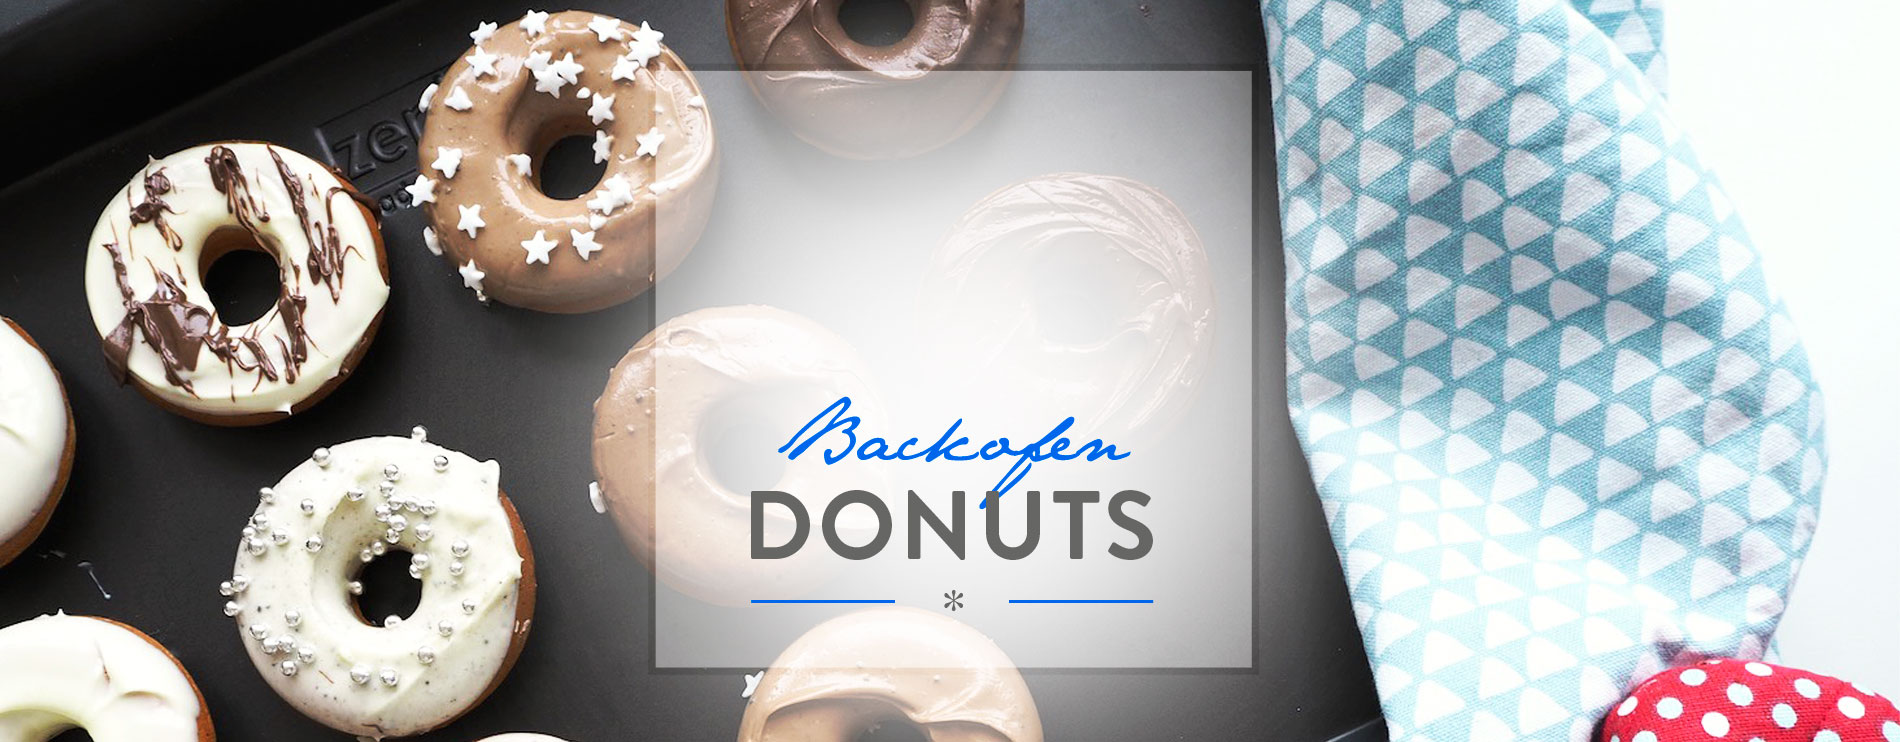 Header Backofen Donuts